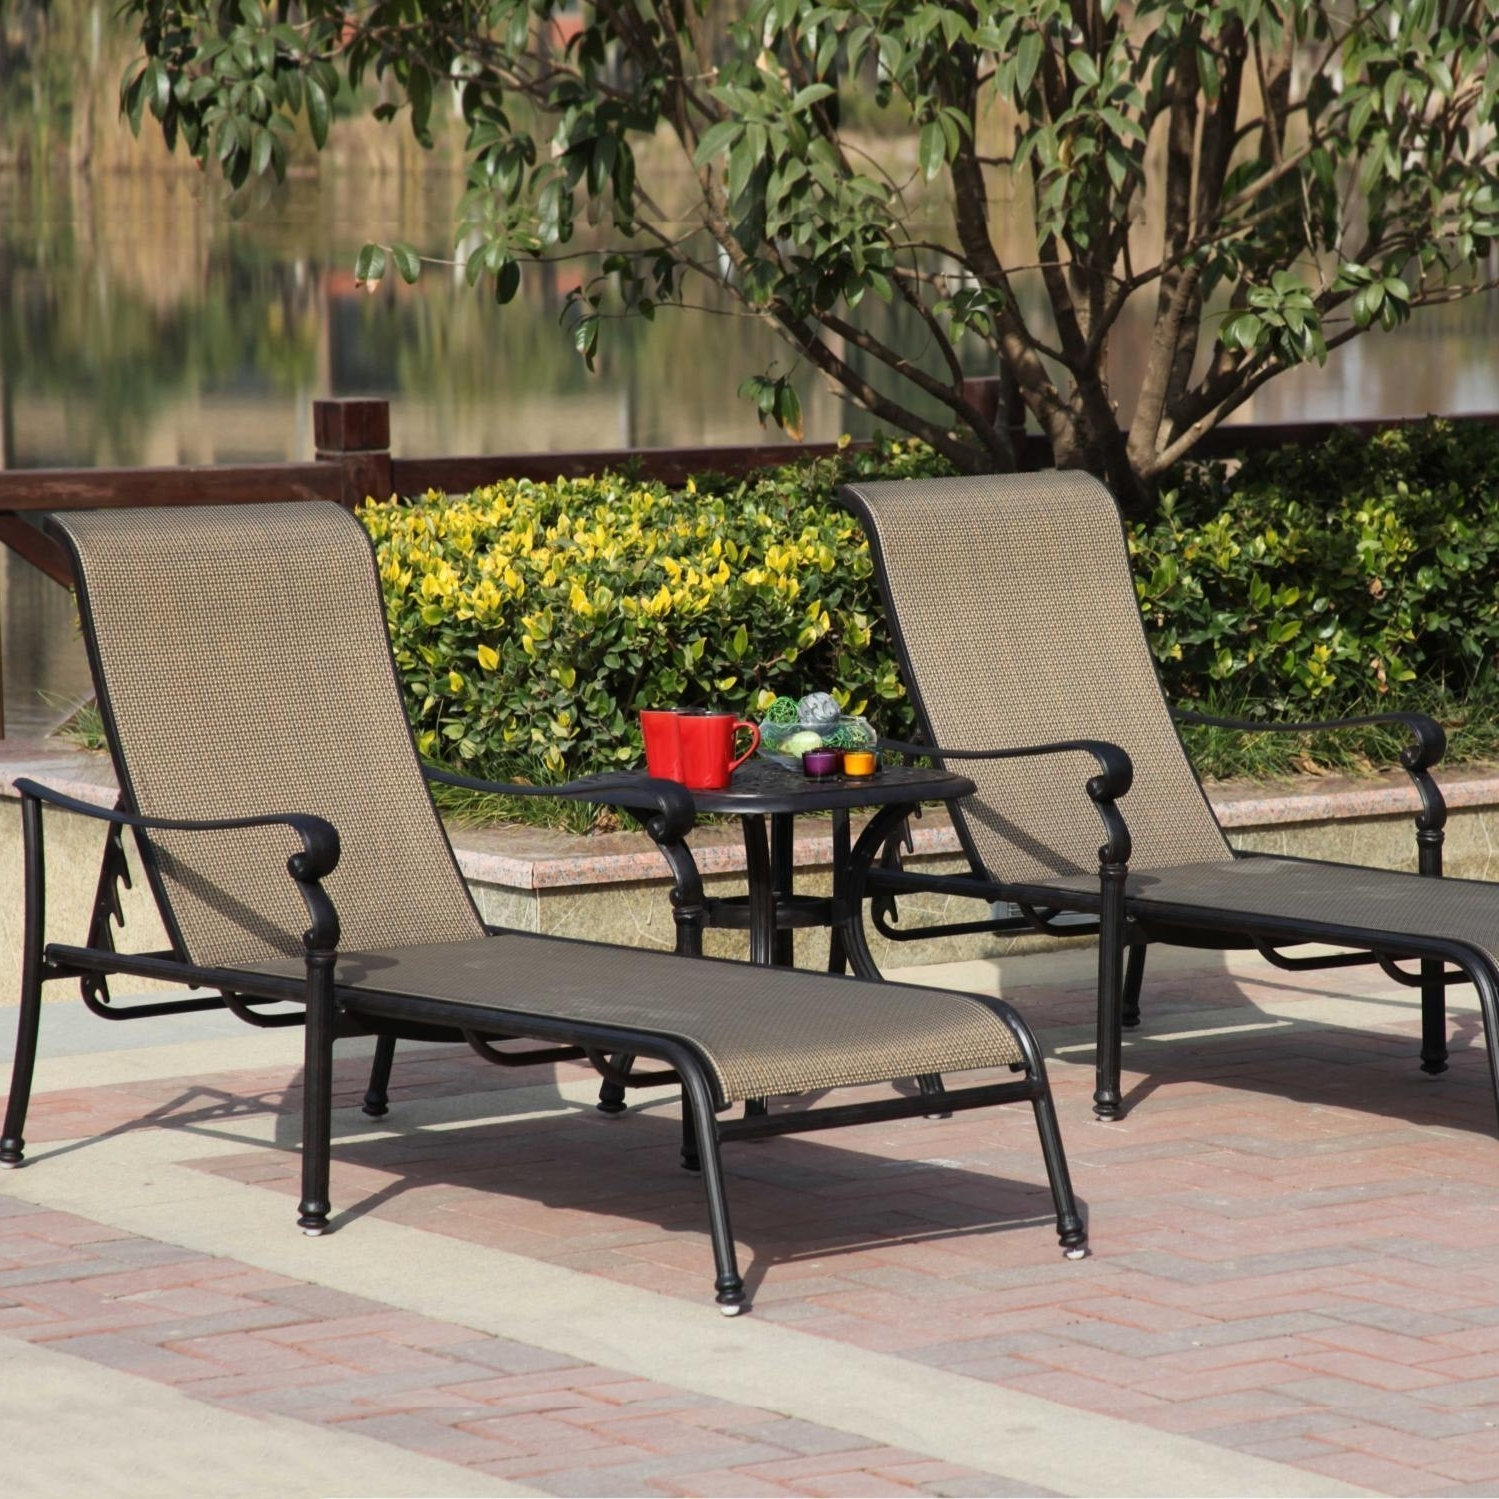 Darlee Monterey 3 Piece Sling Patio Chaise Lounge Set : Ultimate Patio Regarding Famous Patio Chaise Lounges (View 5 of 15)